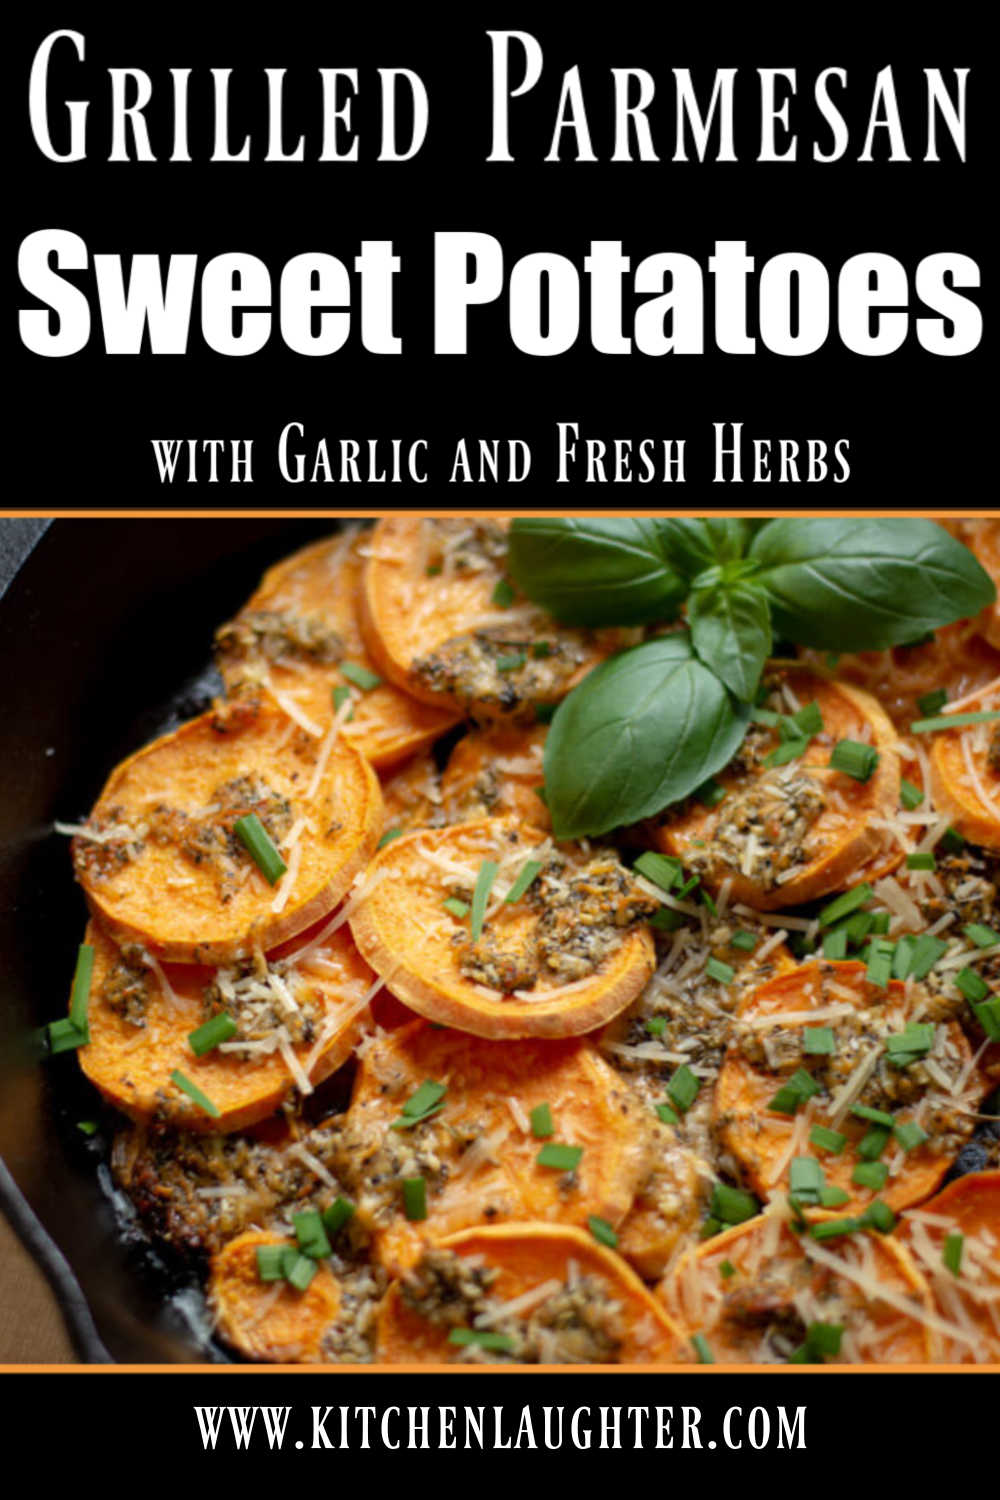 Grilled Parmesan Sweet Potatoes Recipe